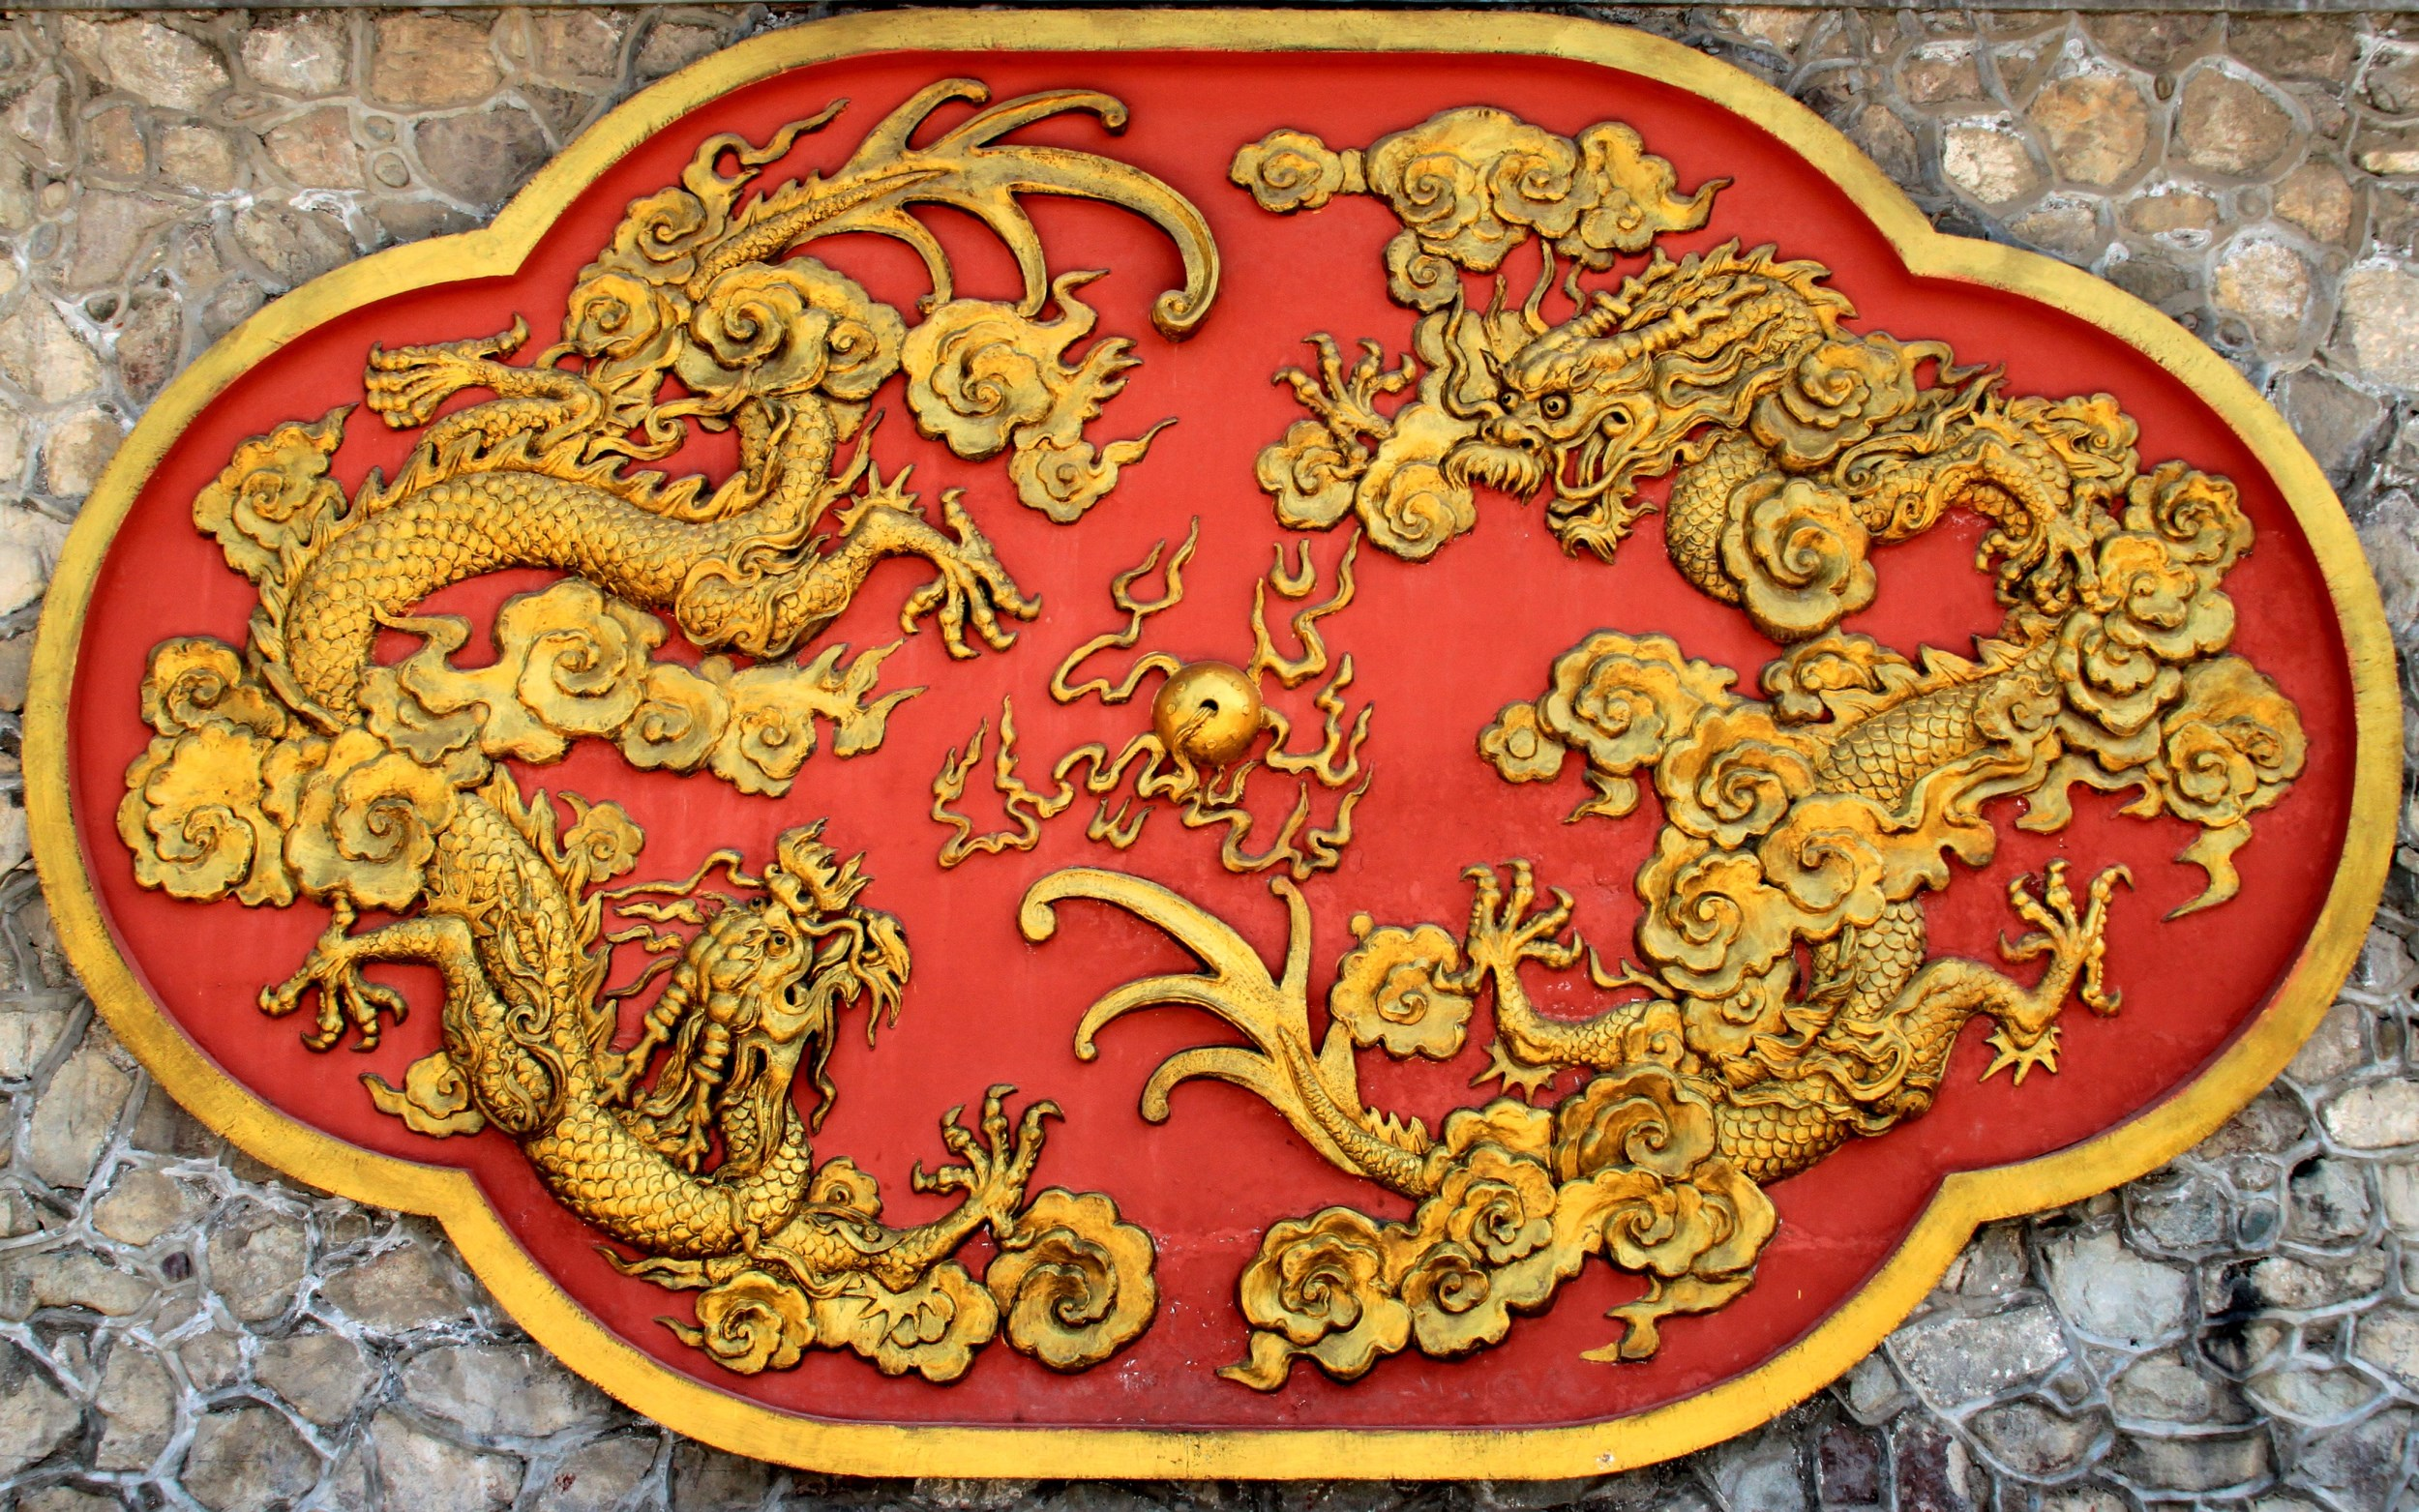 Dragon red gold emblem cropped Redocn_2014080913144634 (2500 x 1563)